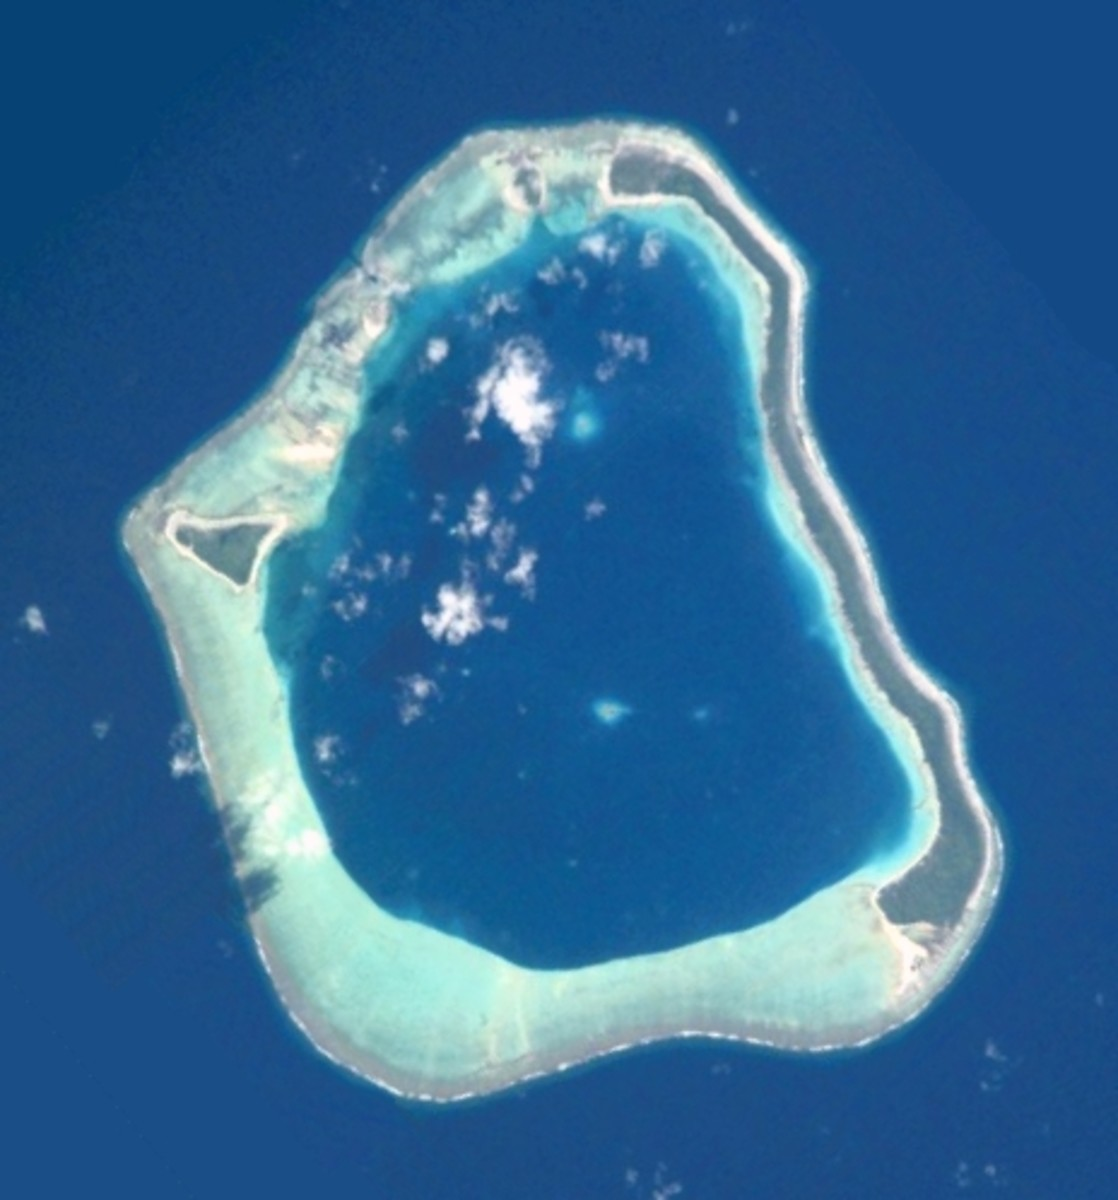 Mopelia, also known as Maupihaa, the atoll in the Pacific where Sea Eagle was wrecked in 1917.